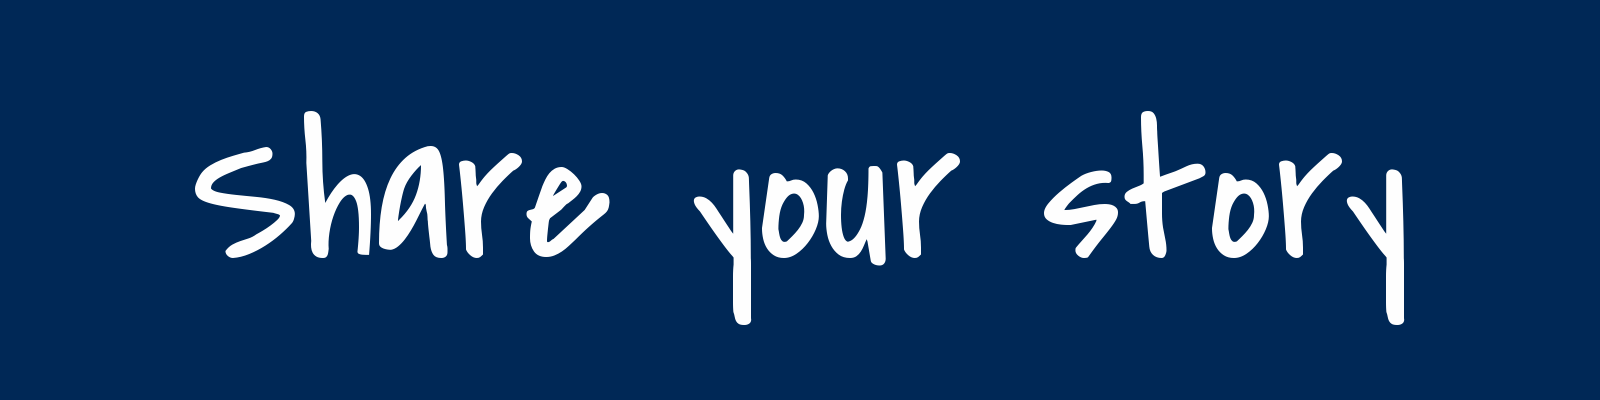 Share your story banner